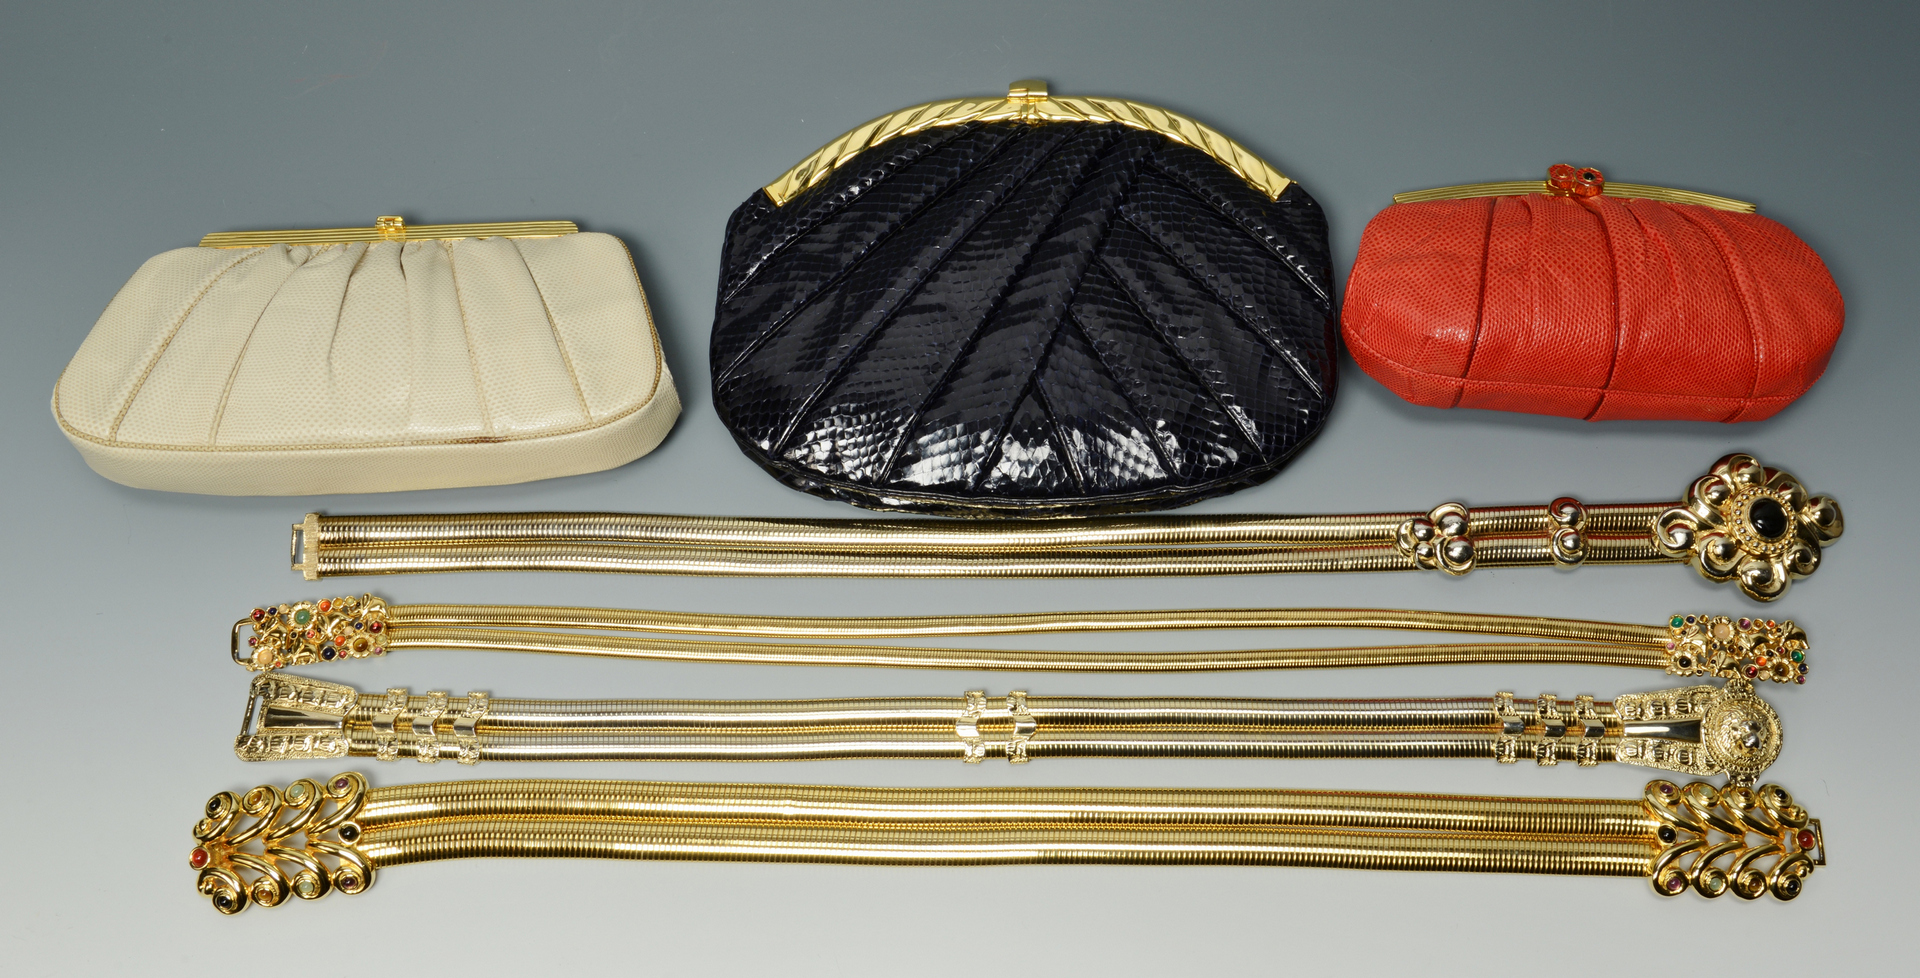 Lot 3088236: Judith Leiber Belts and Bags